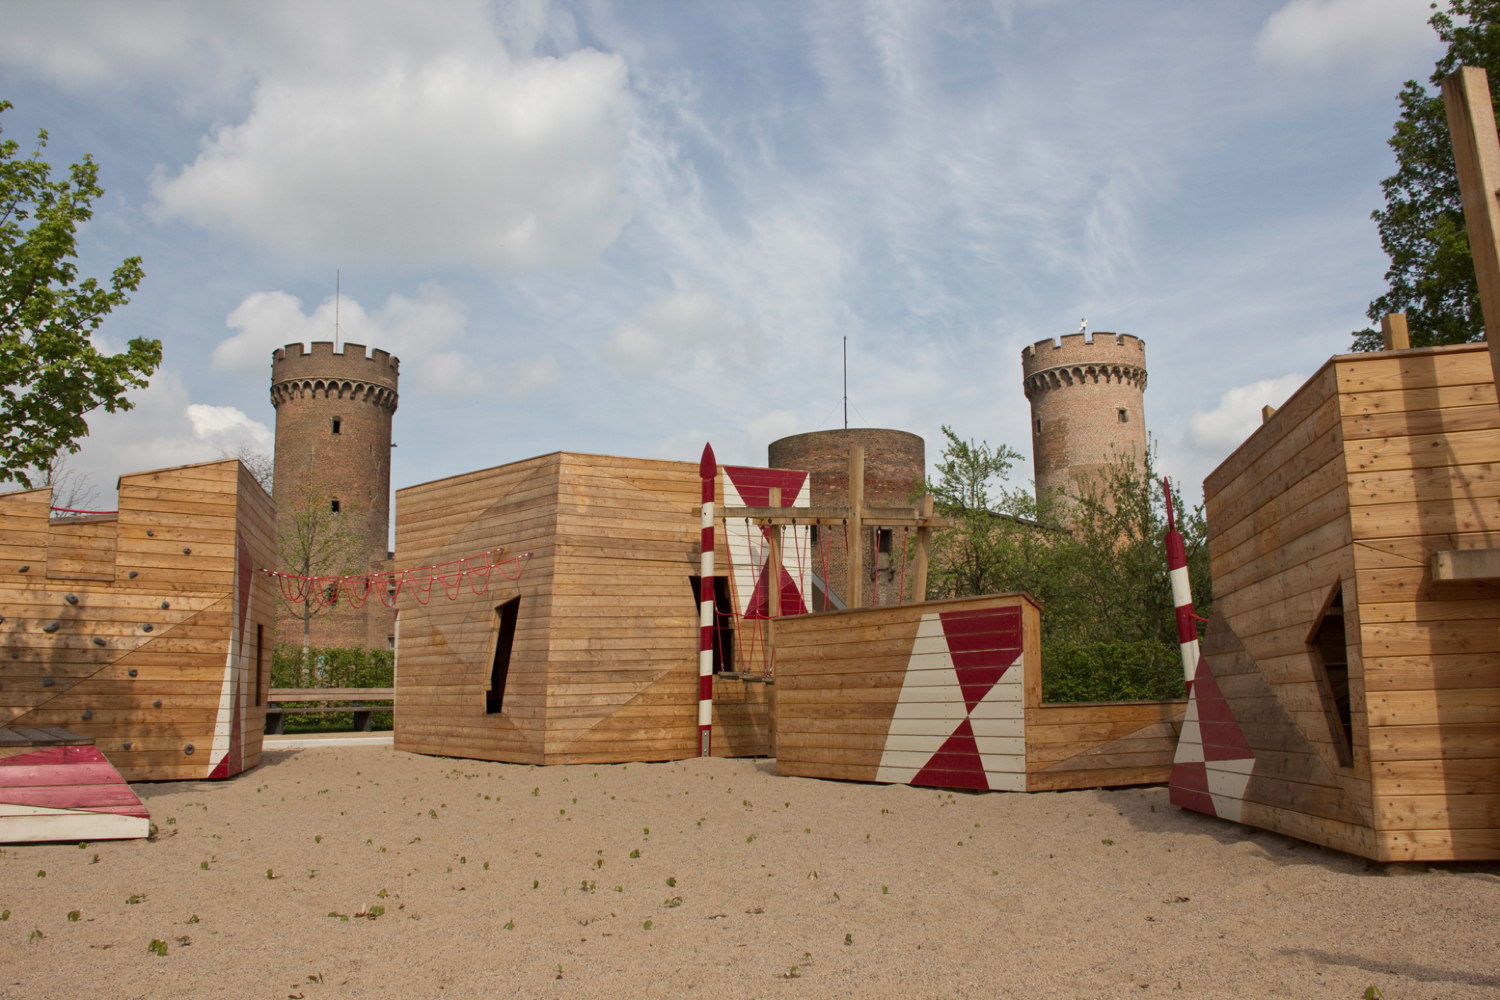 modern castle playground, zulpich germany, rmp stephan lenzen